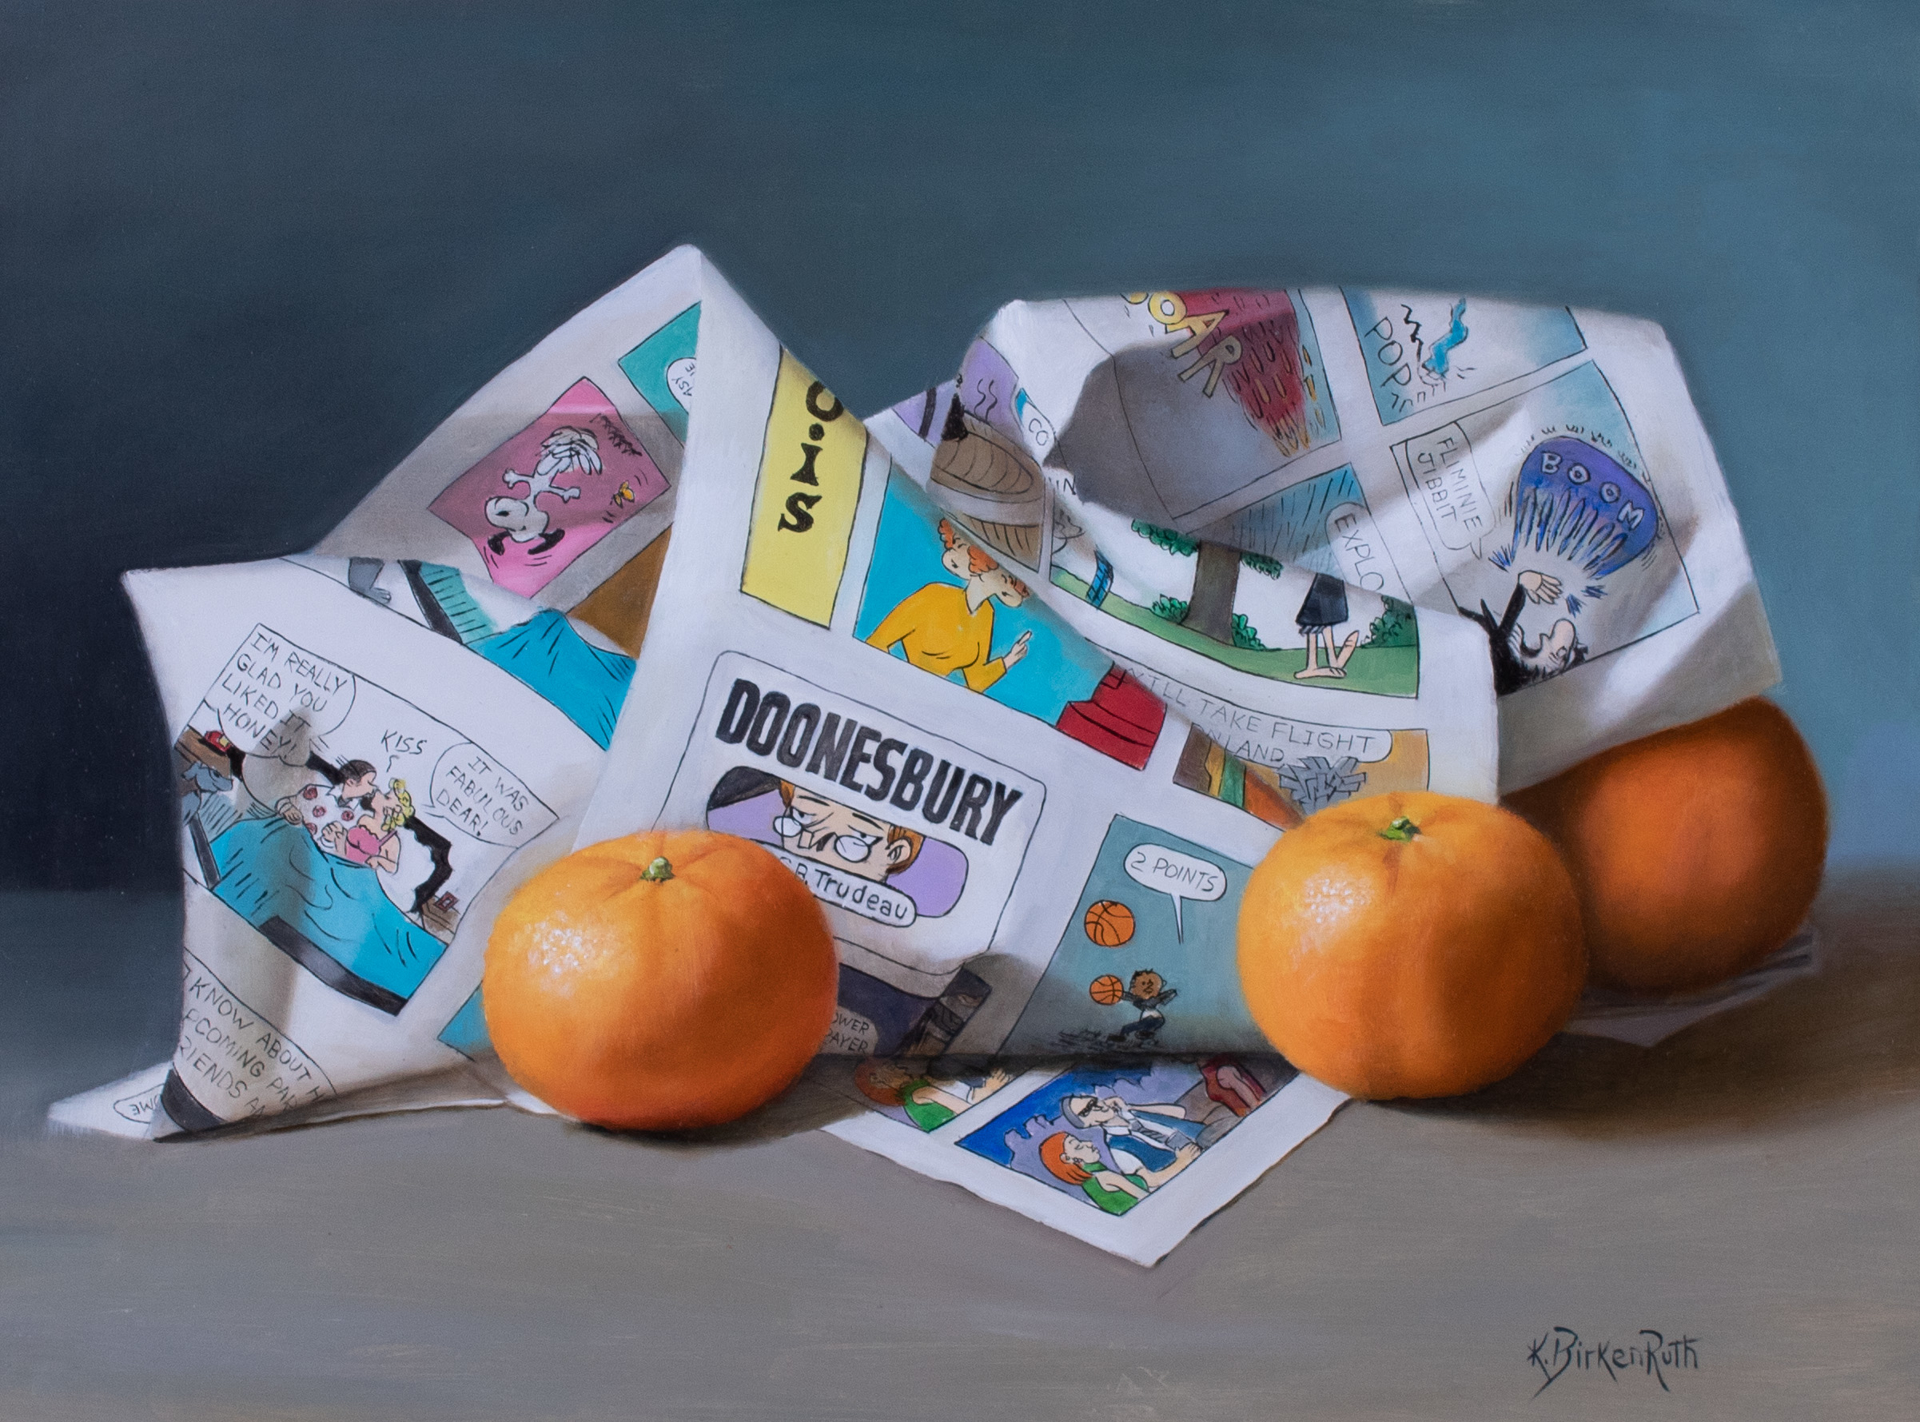 Comedic Clementines by Kelly Birkenruth